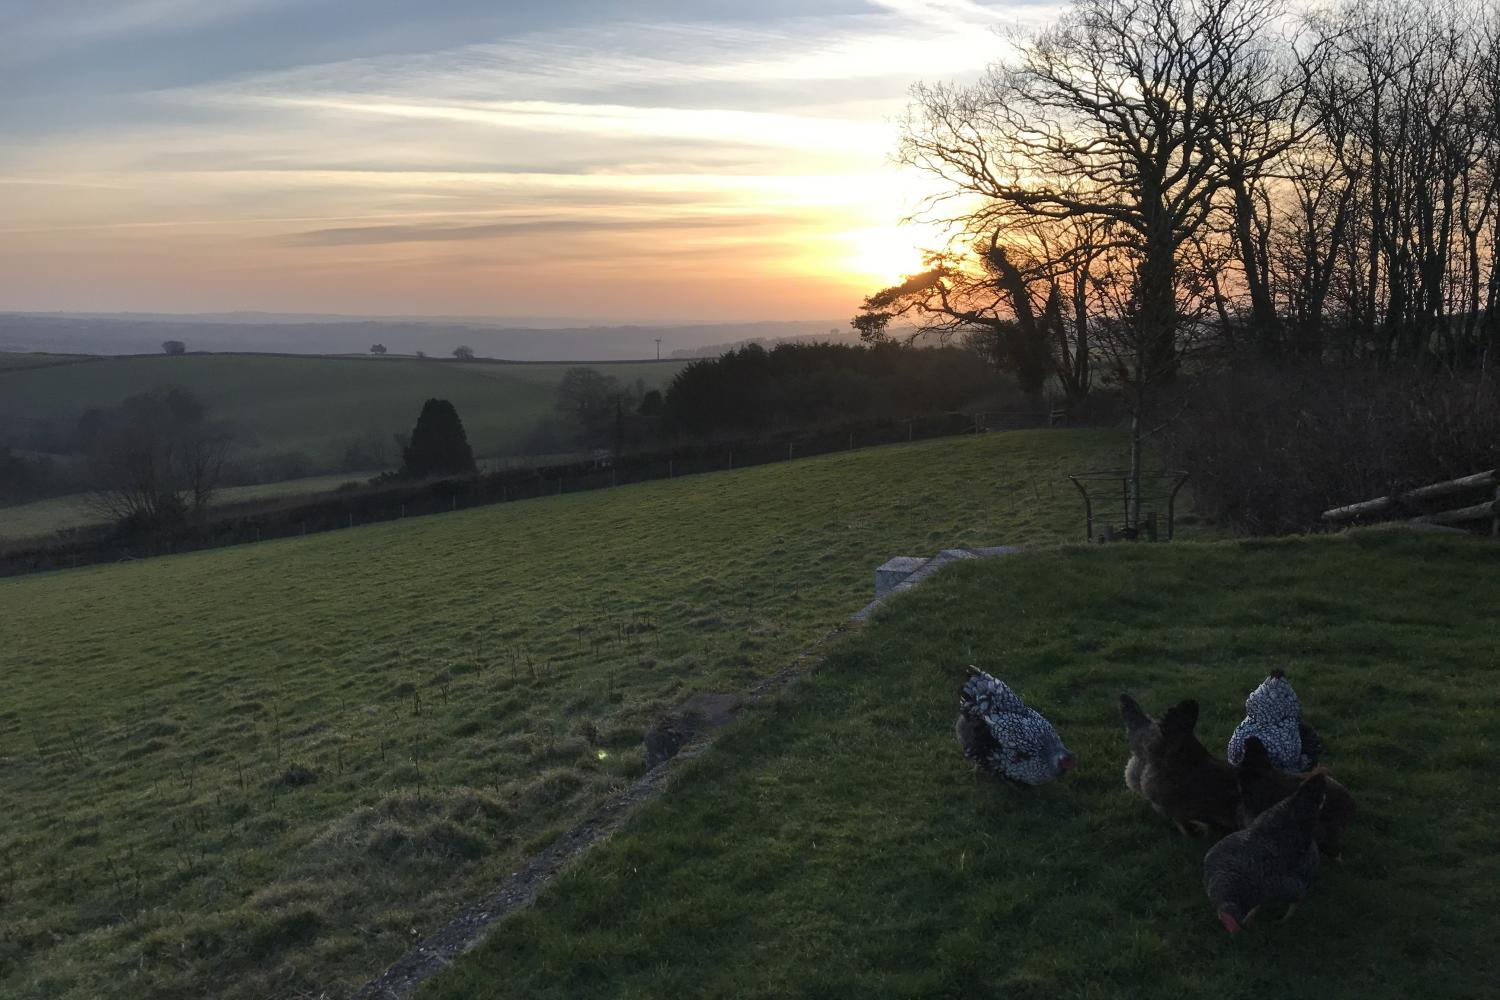 The chickens like a good sunset too!